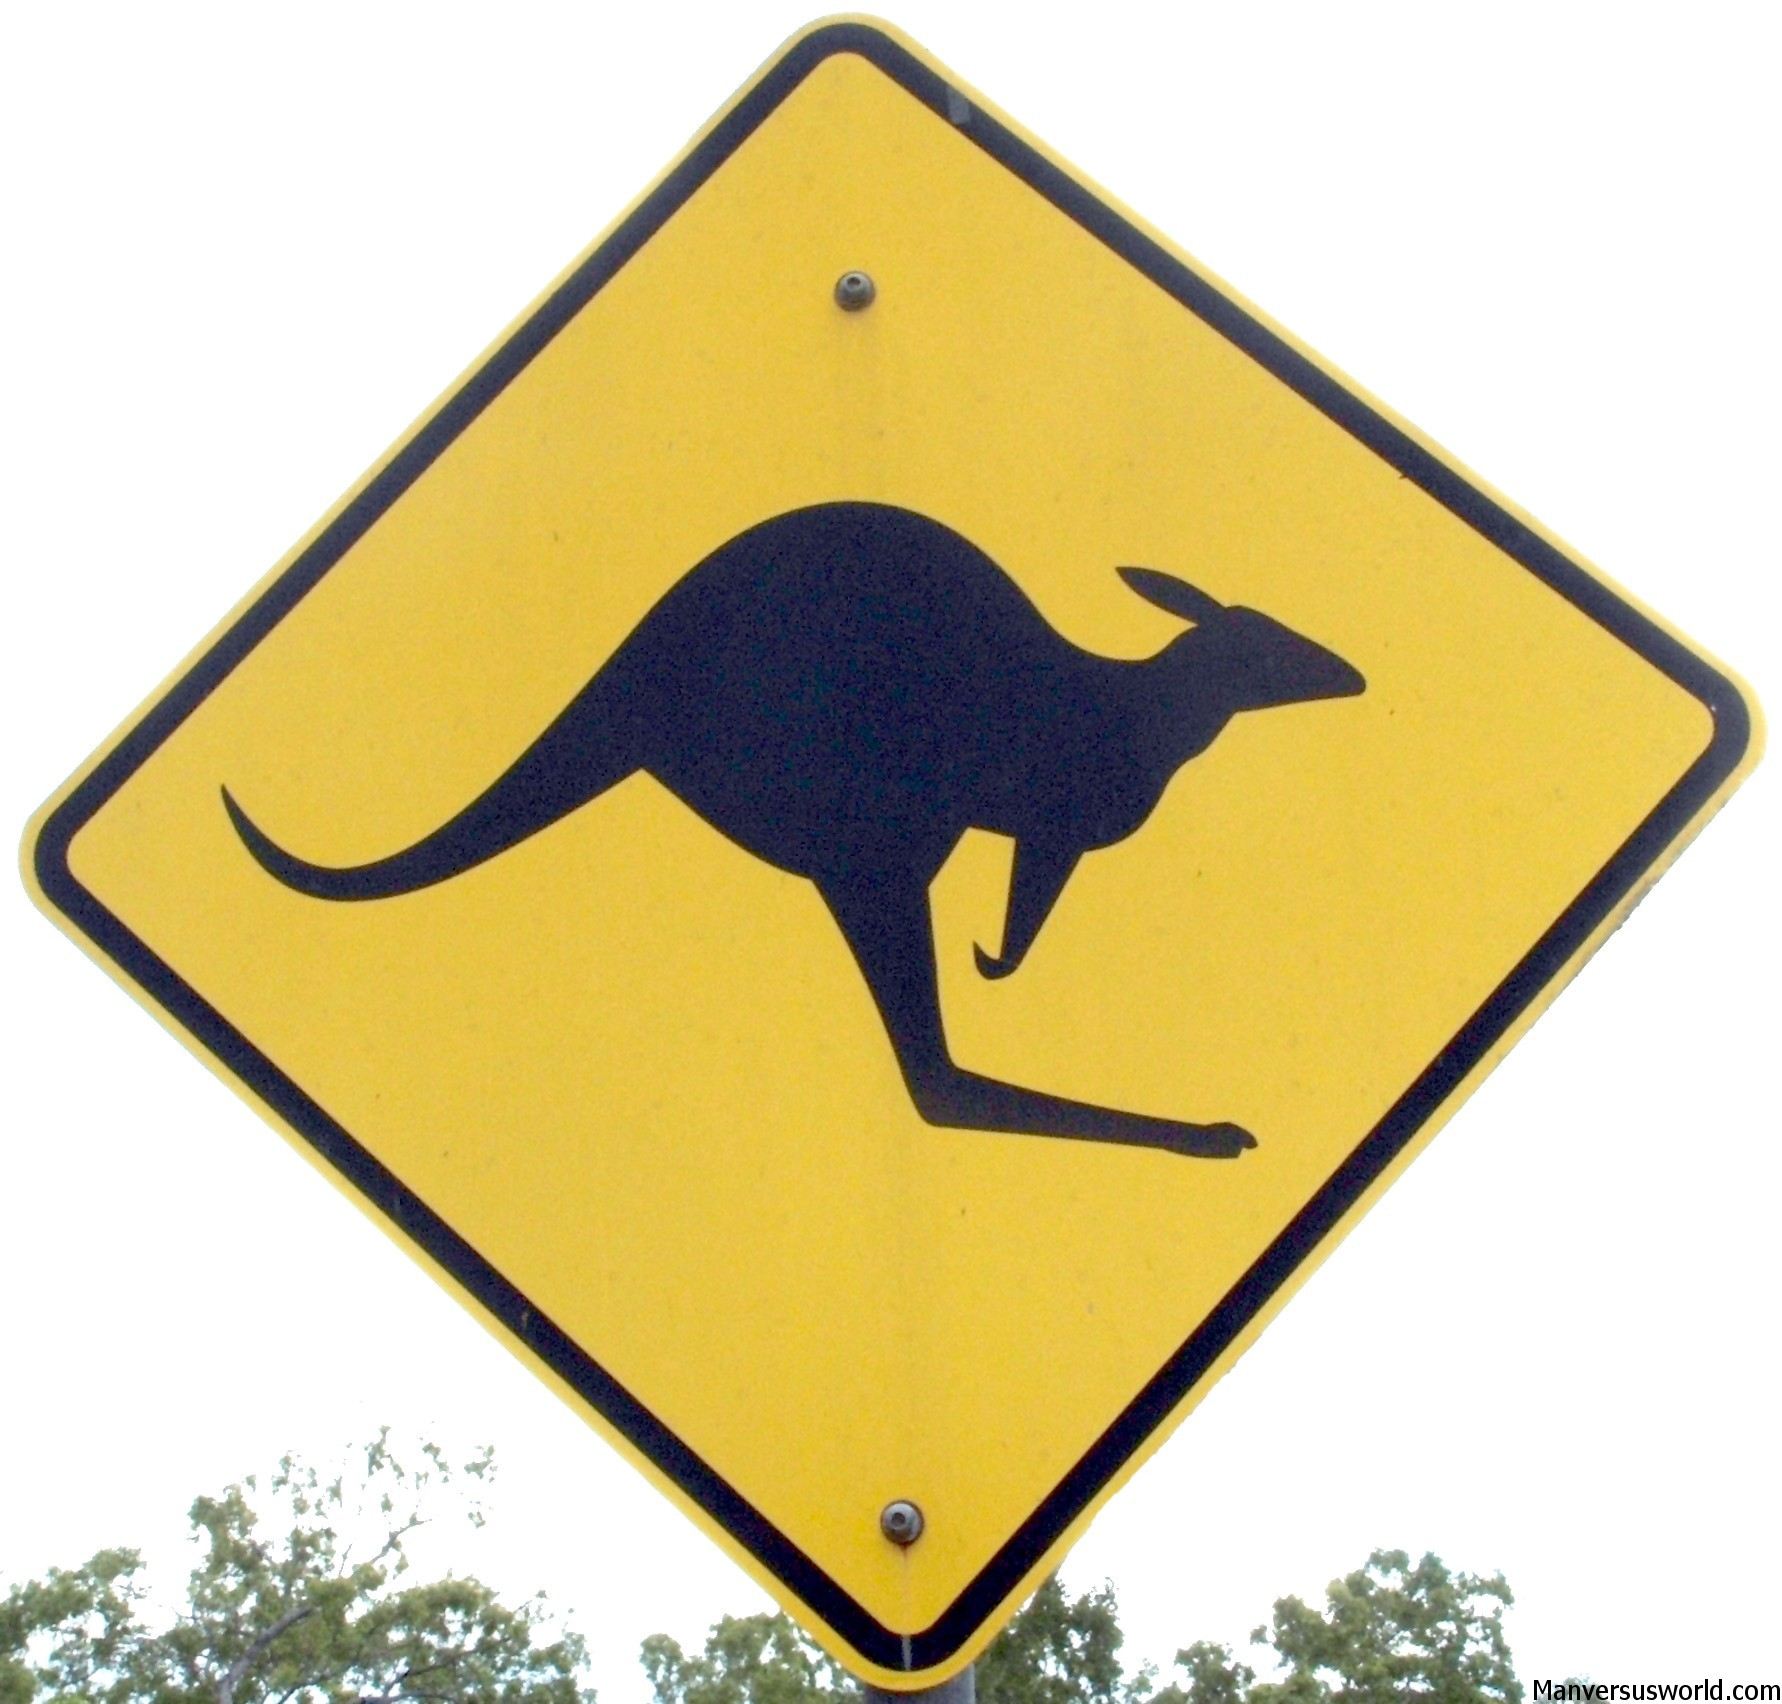 A Kangaroo warning sign in Australia